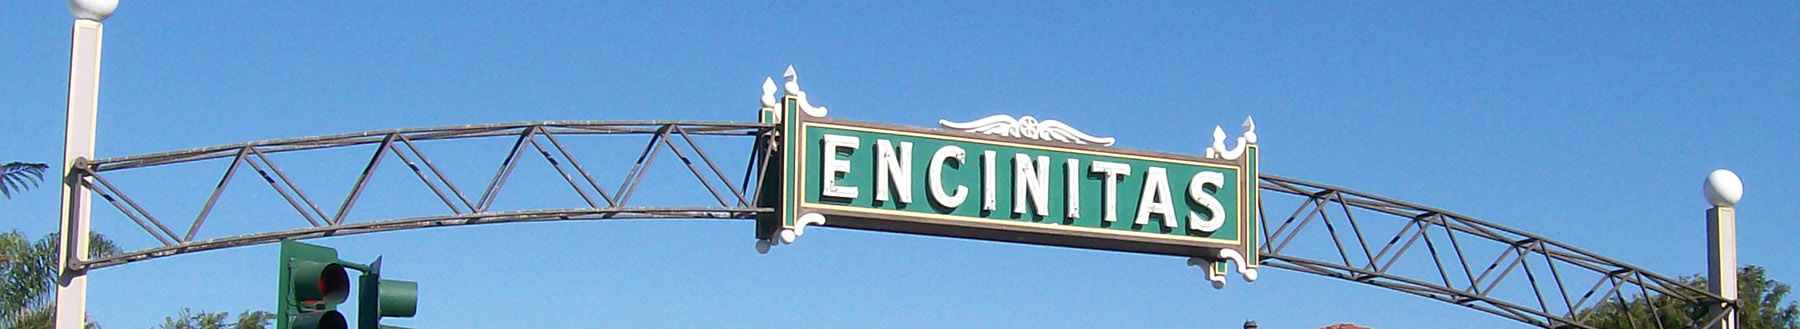 Encinitas New Homes for sale. Downtown Encinitas sign